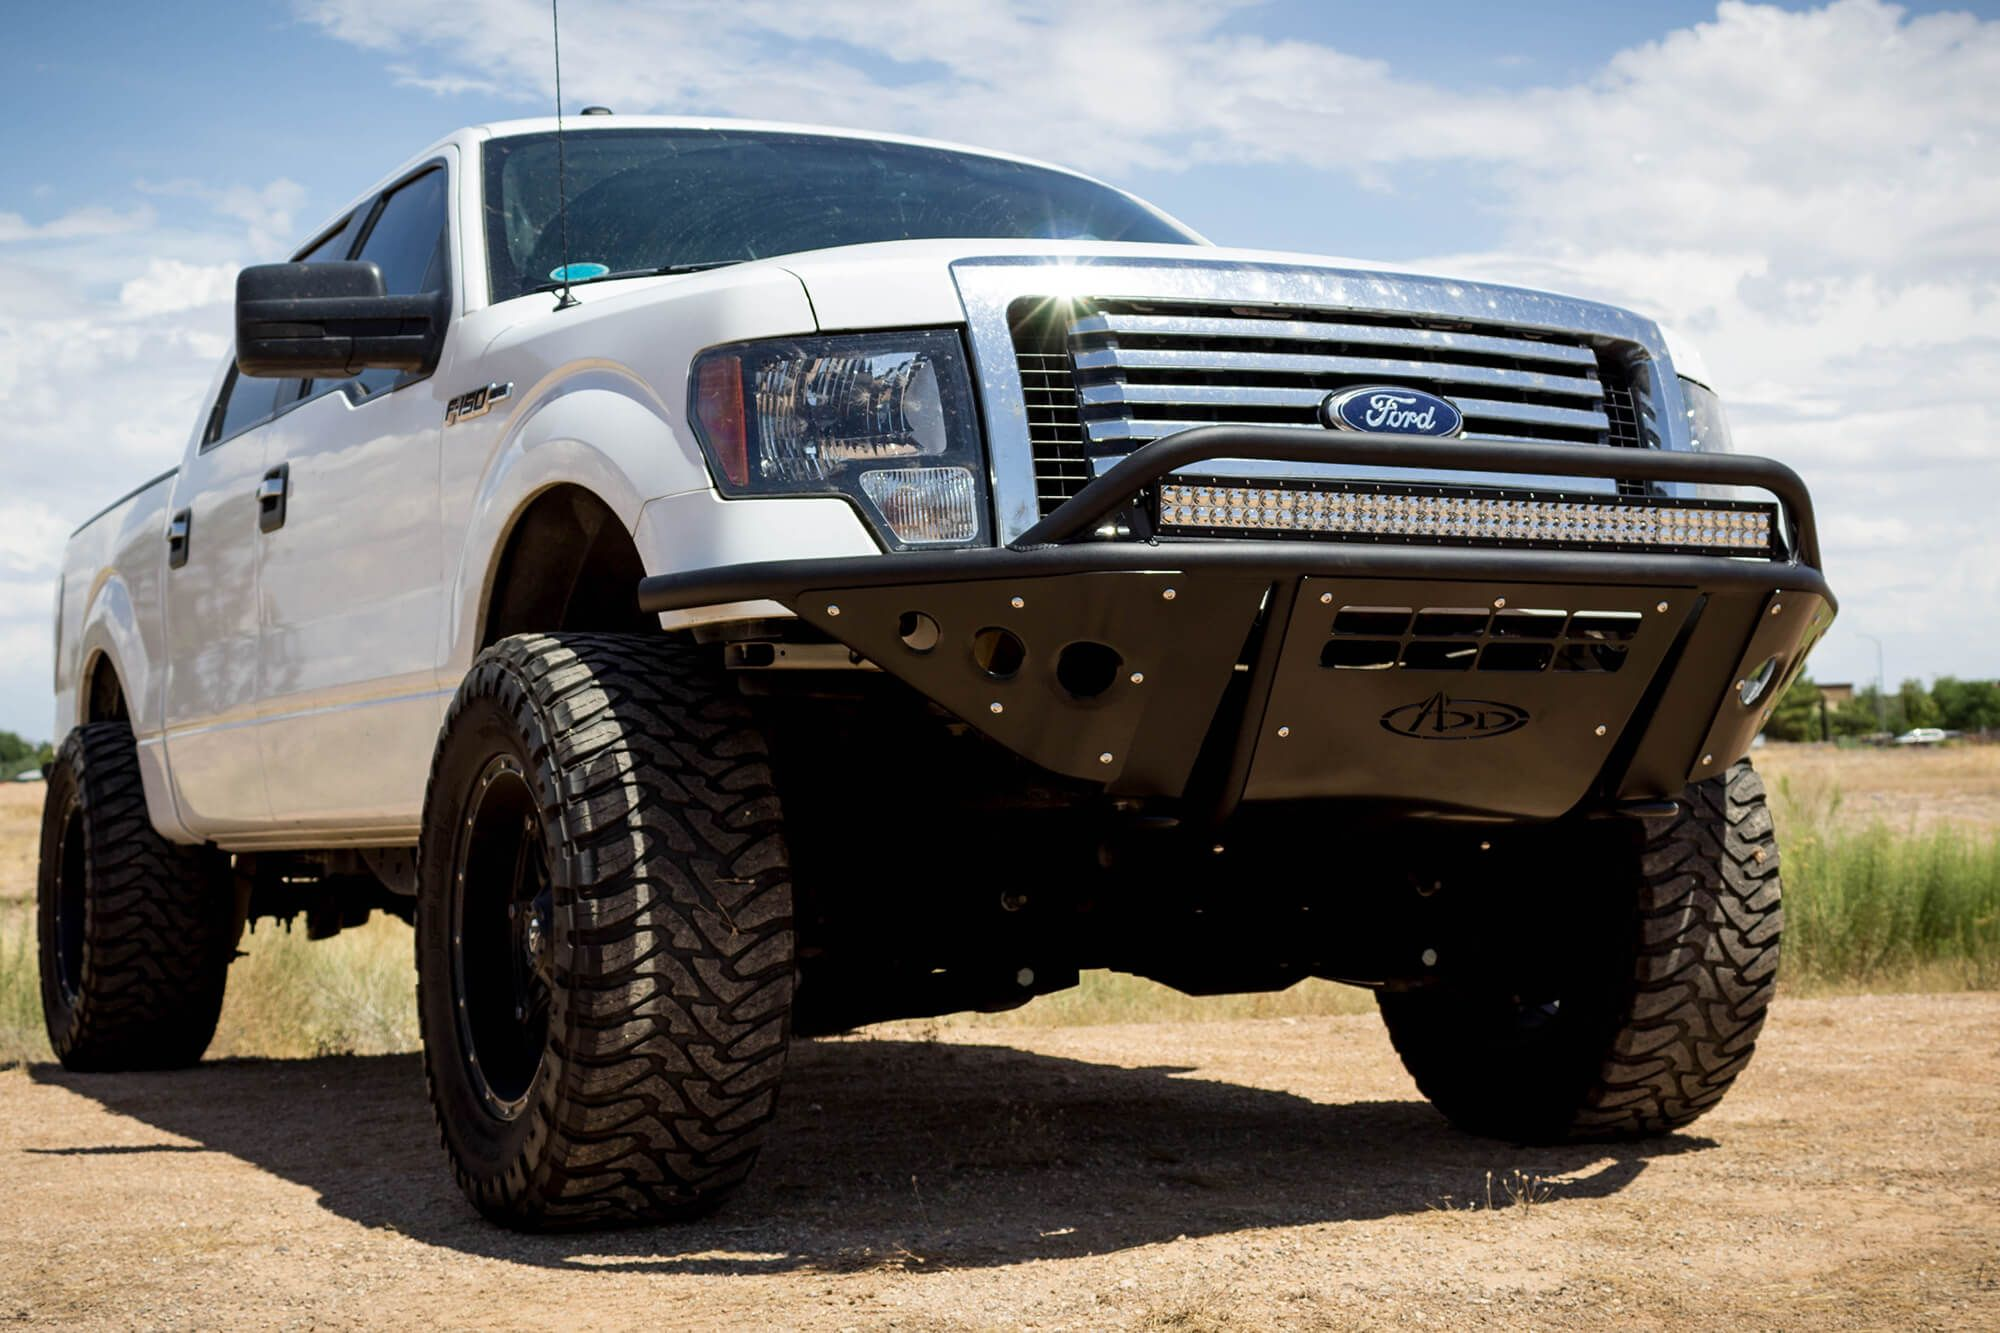 Shop Ford F150 Stealth Front Bumper At Add Offroad Trucks Ford Trucks Custom Trucks